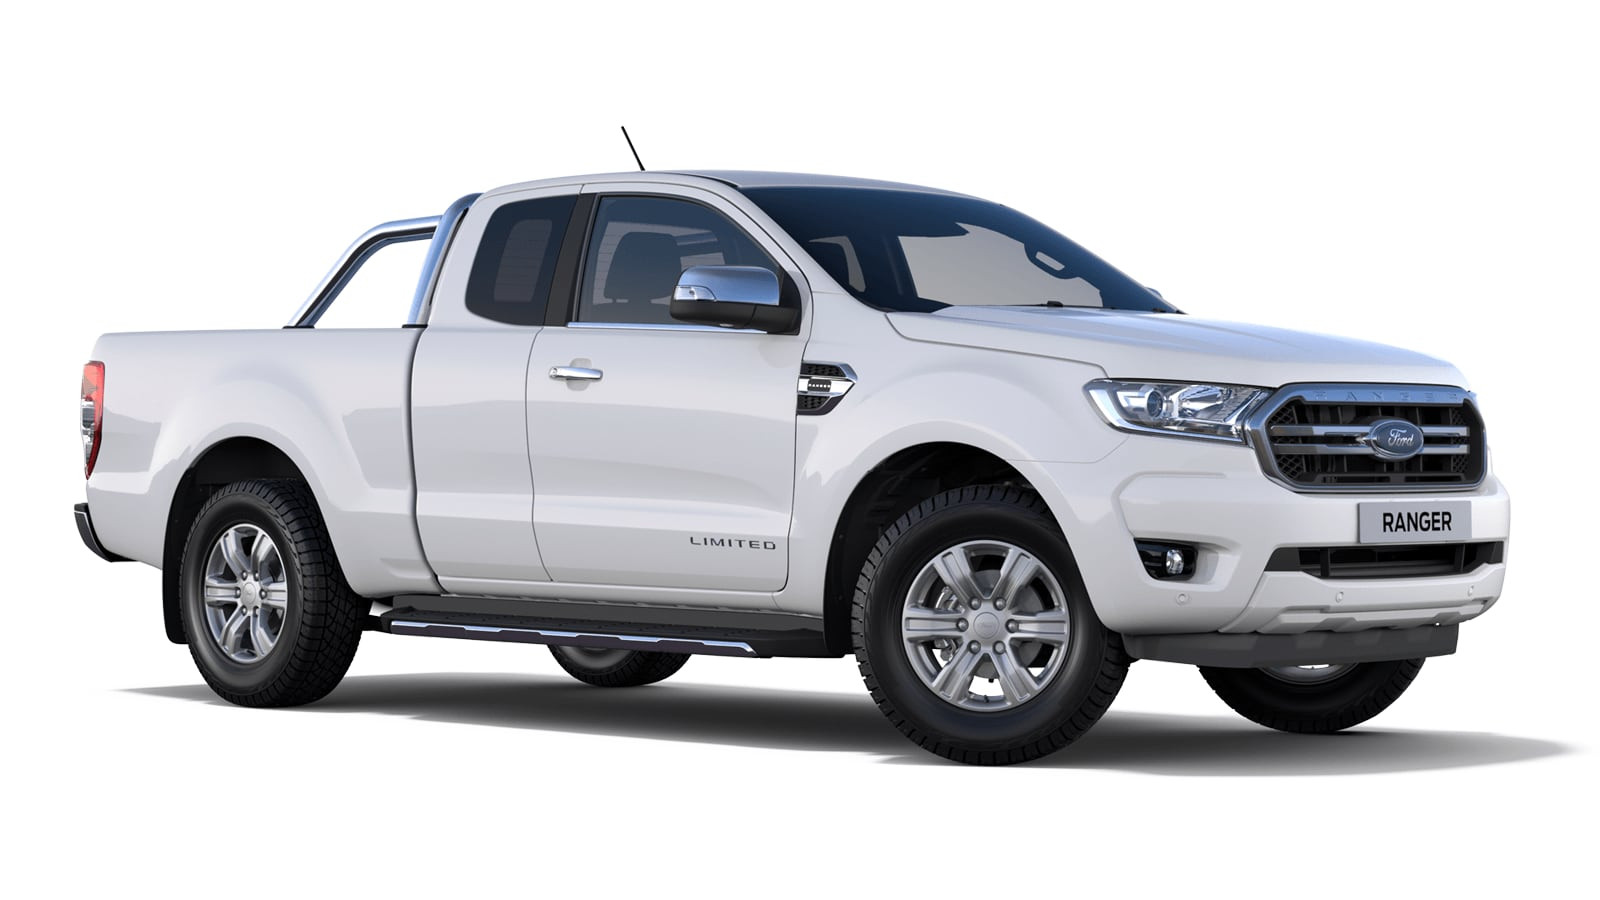 New Ford Ranger Limited